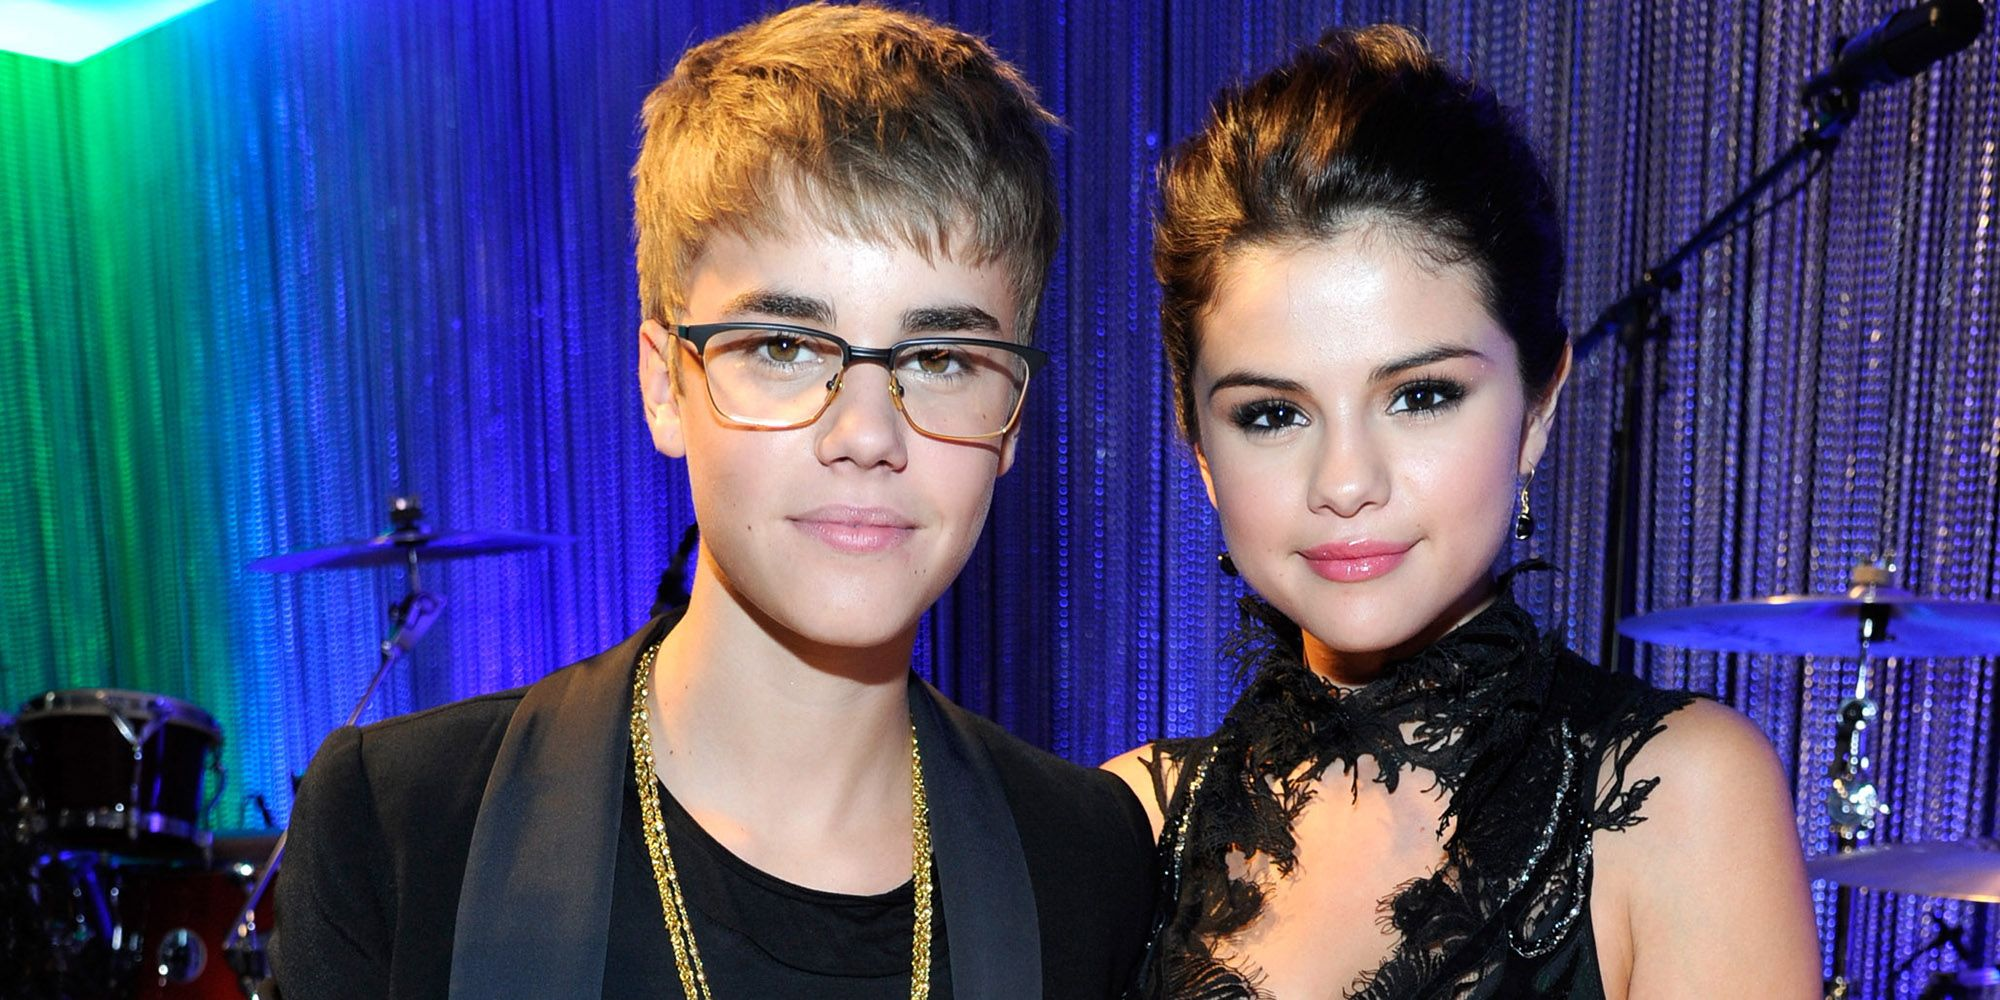 June 2017: A Selena and Justin duet reportedly leaked on Soundcloud